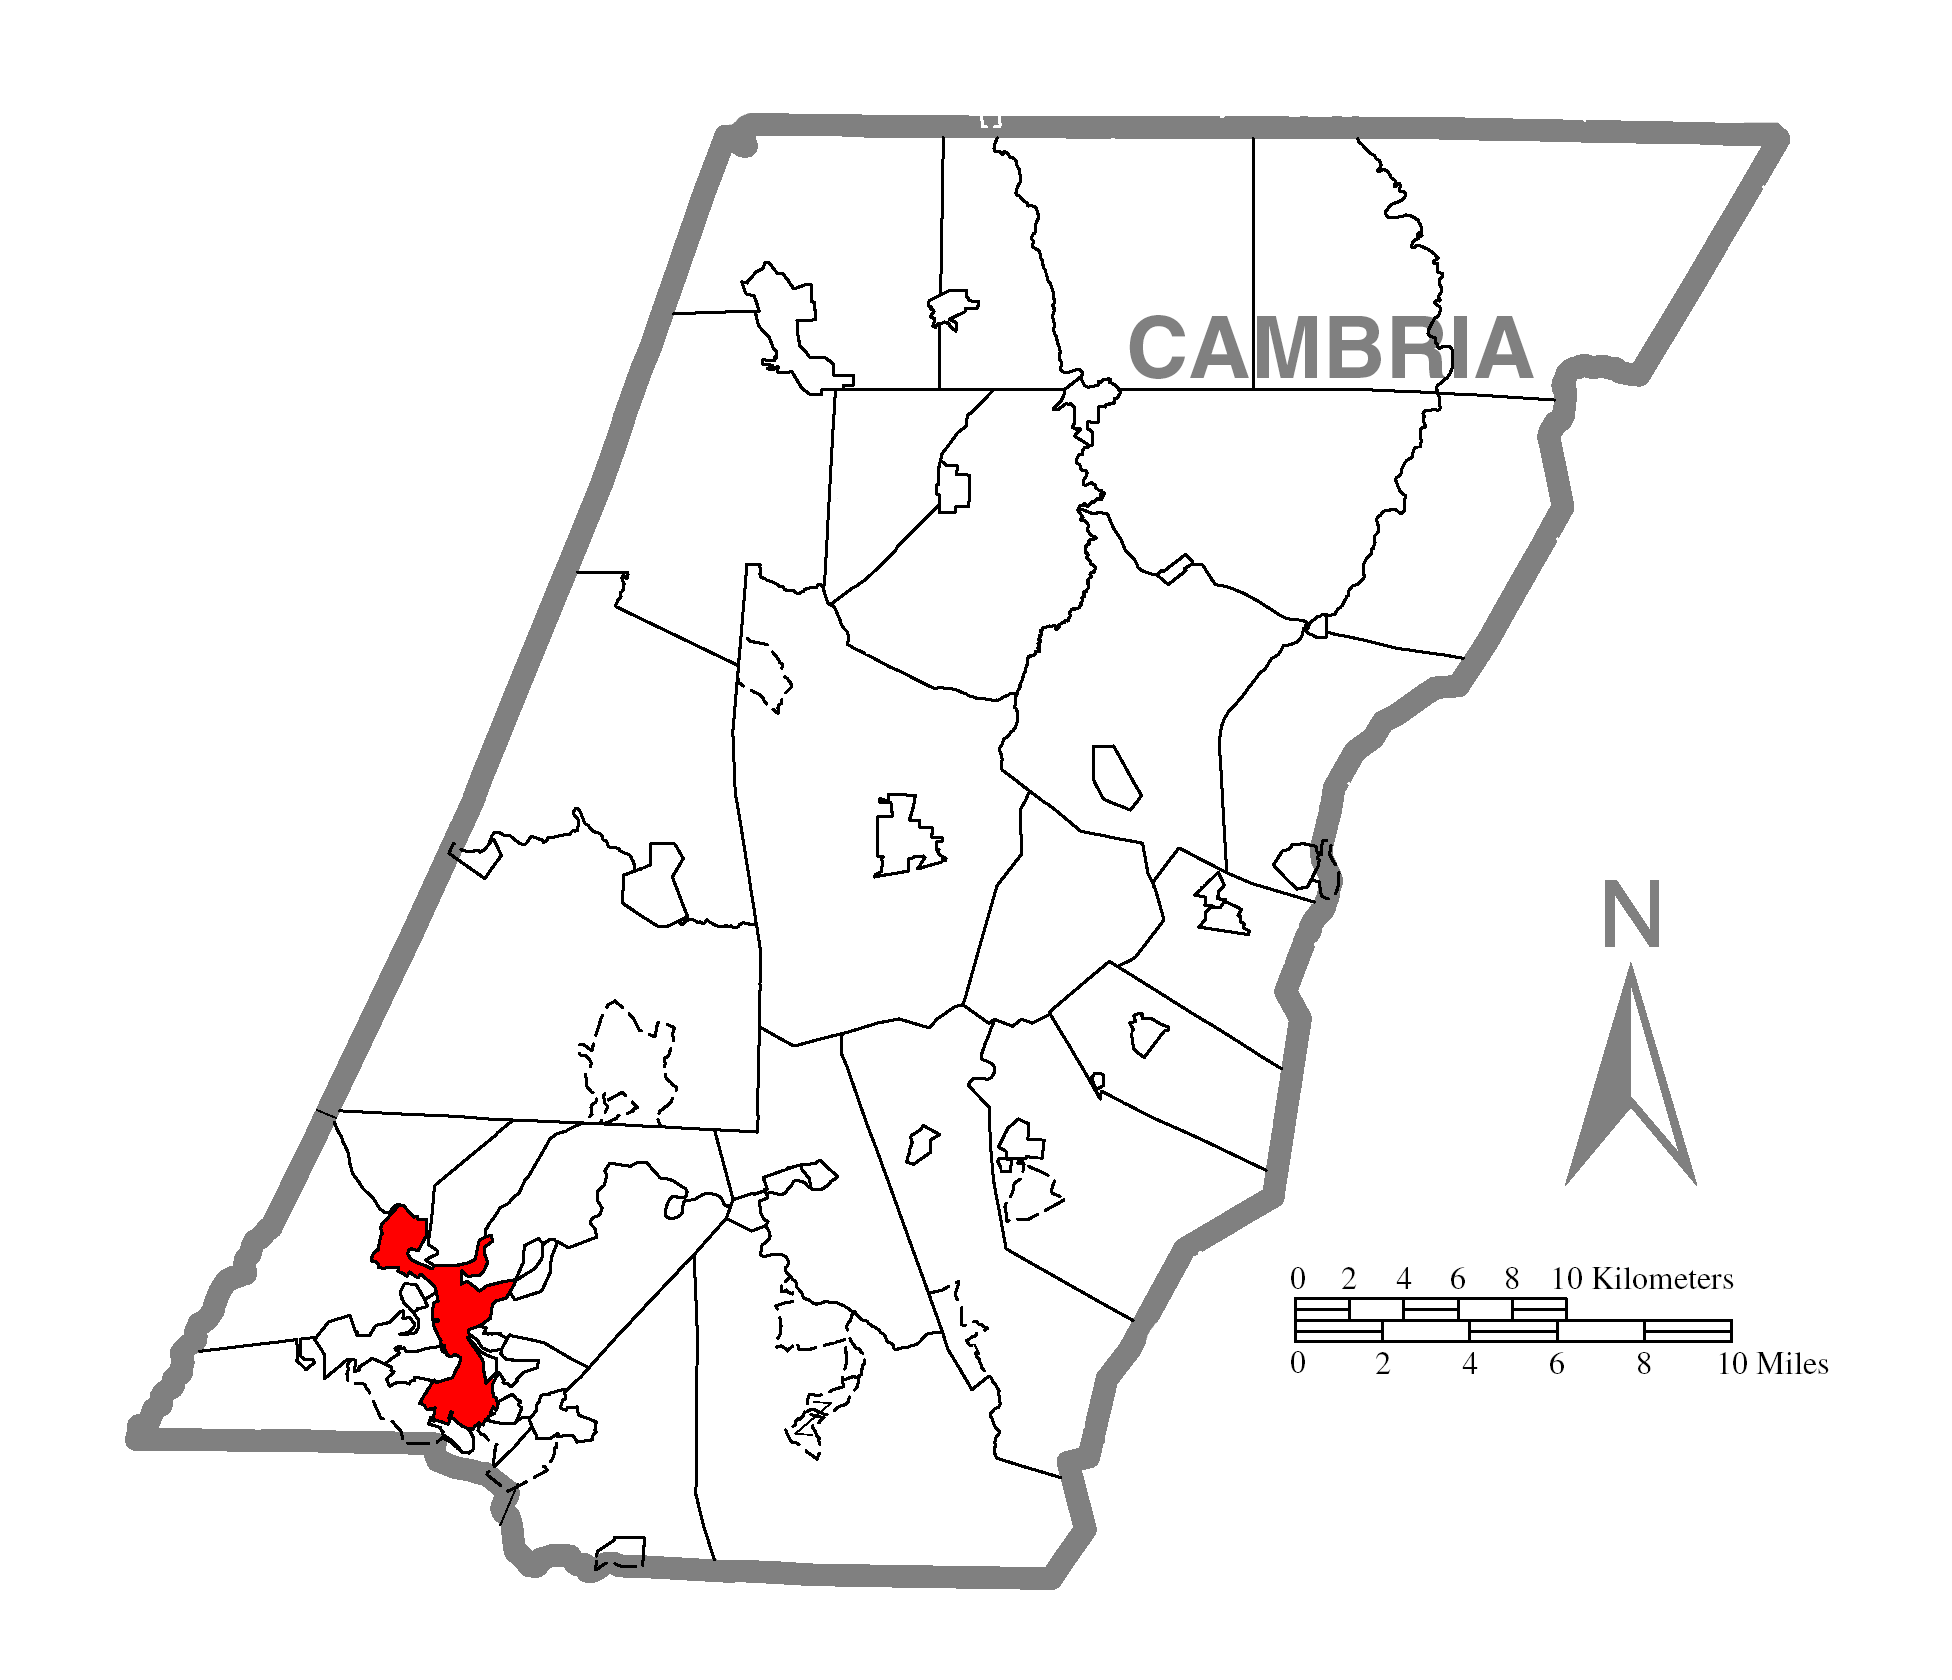 Map Of Johnstownc Cambria Countyc Pennsylvania Highlighted